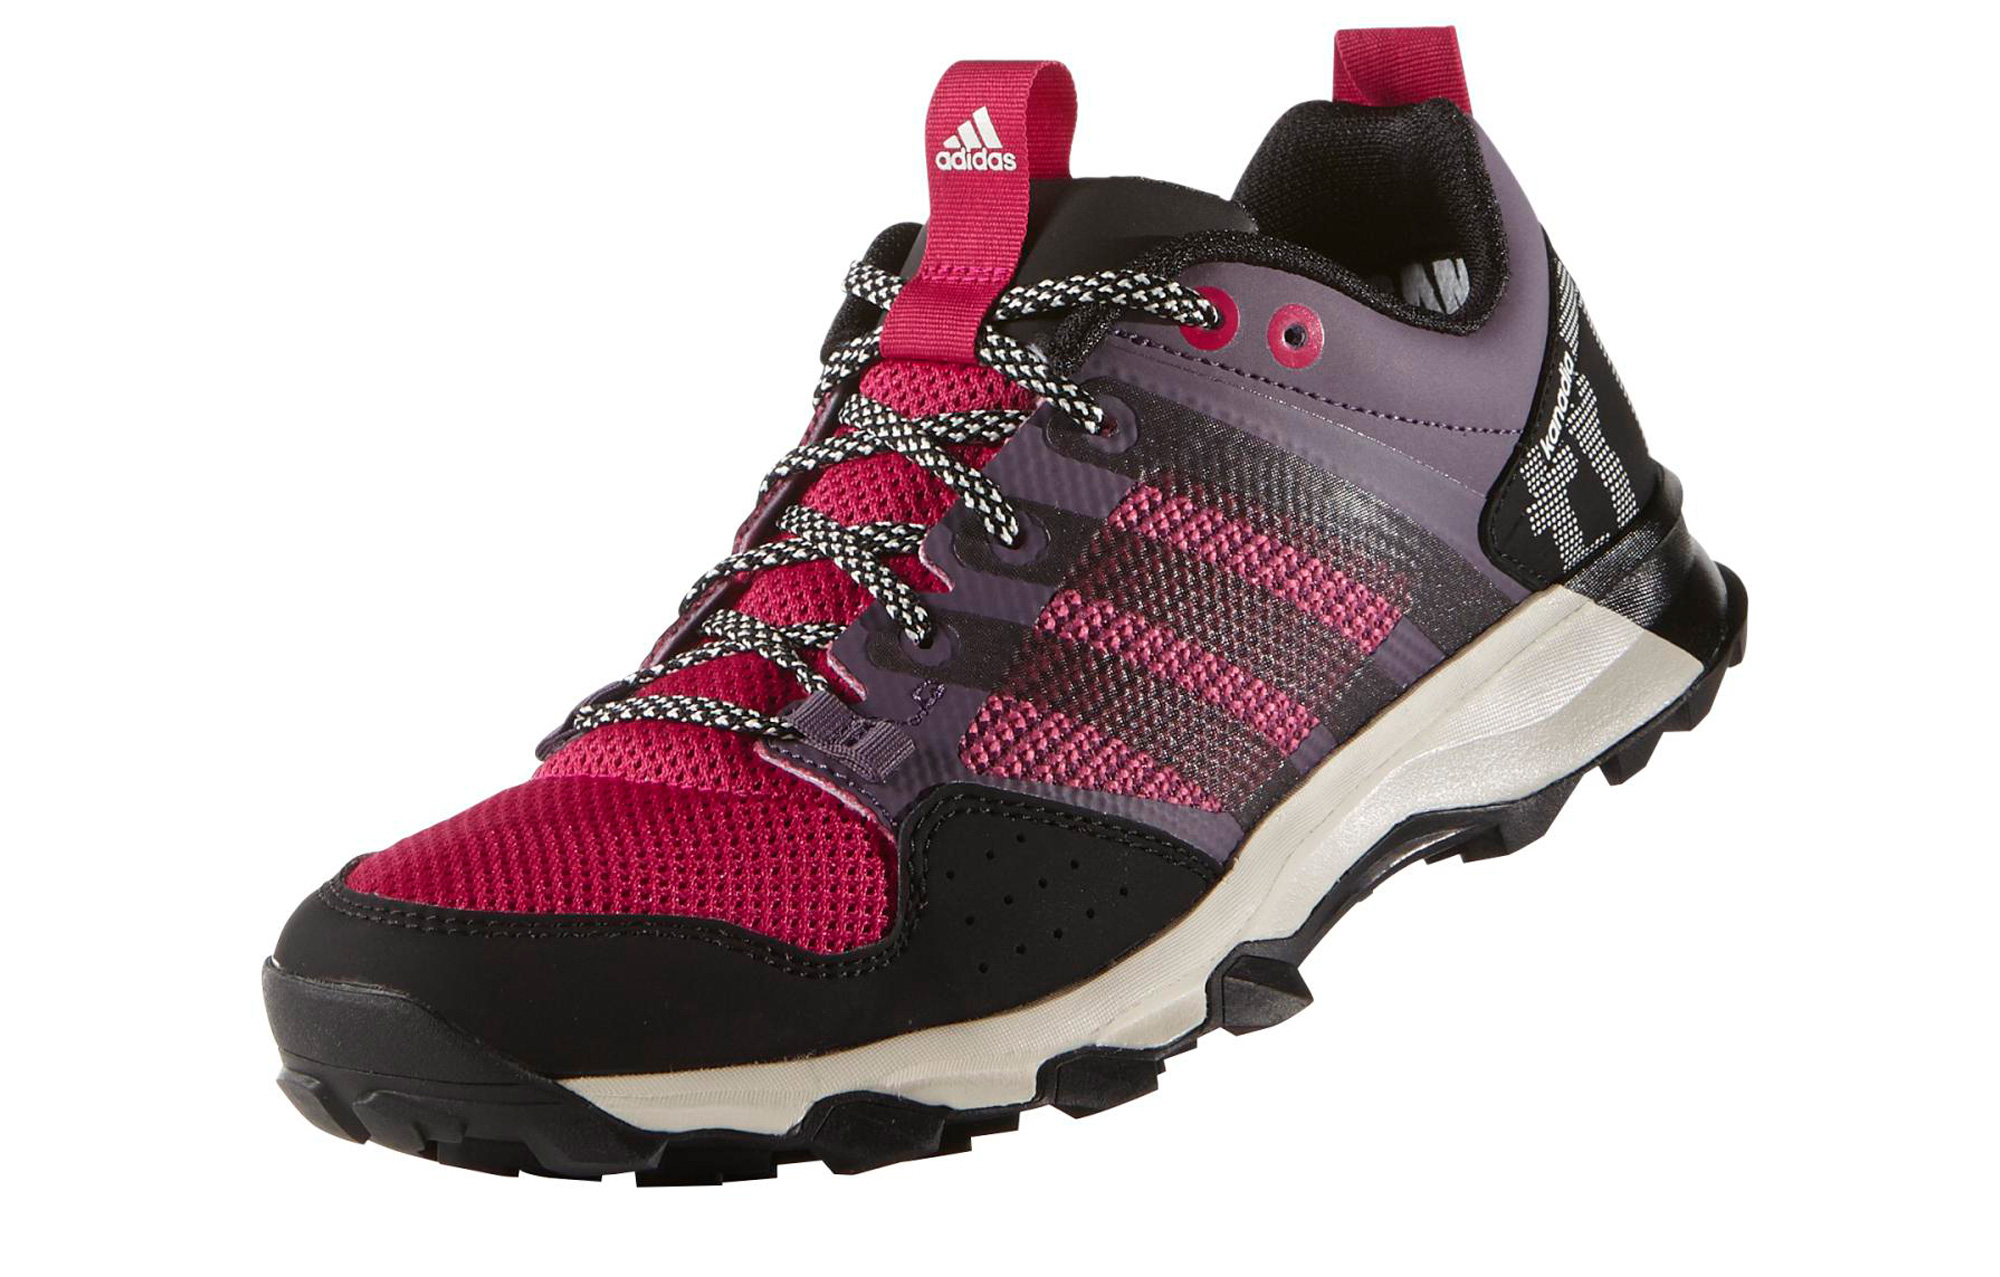 adidas chaussures trail femme